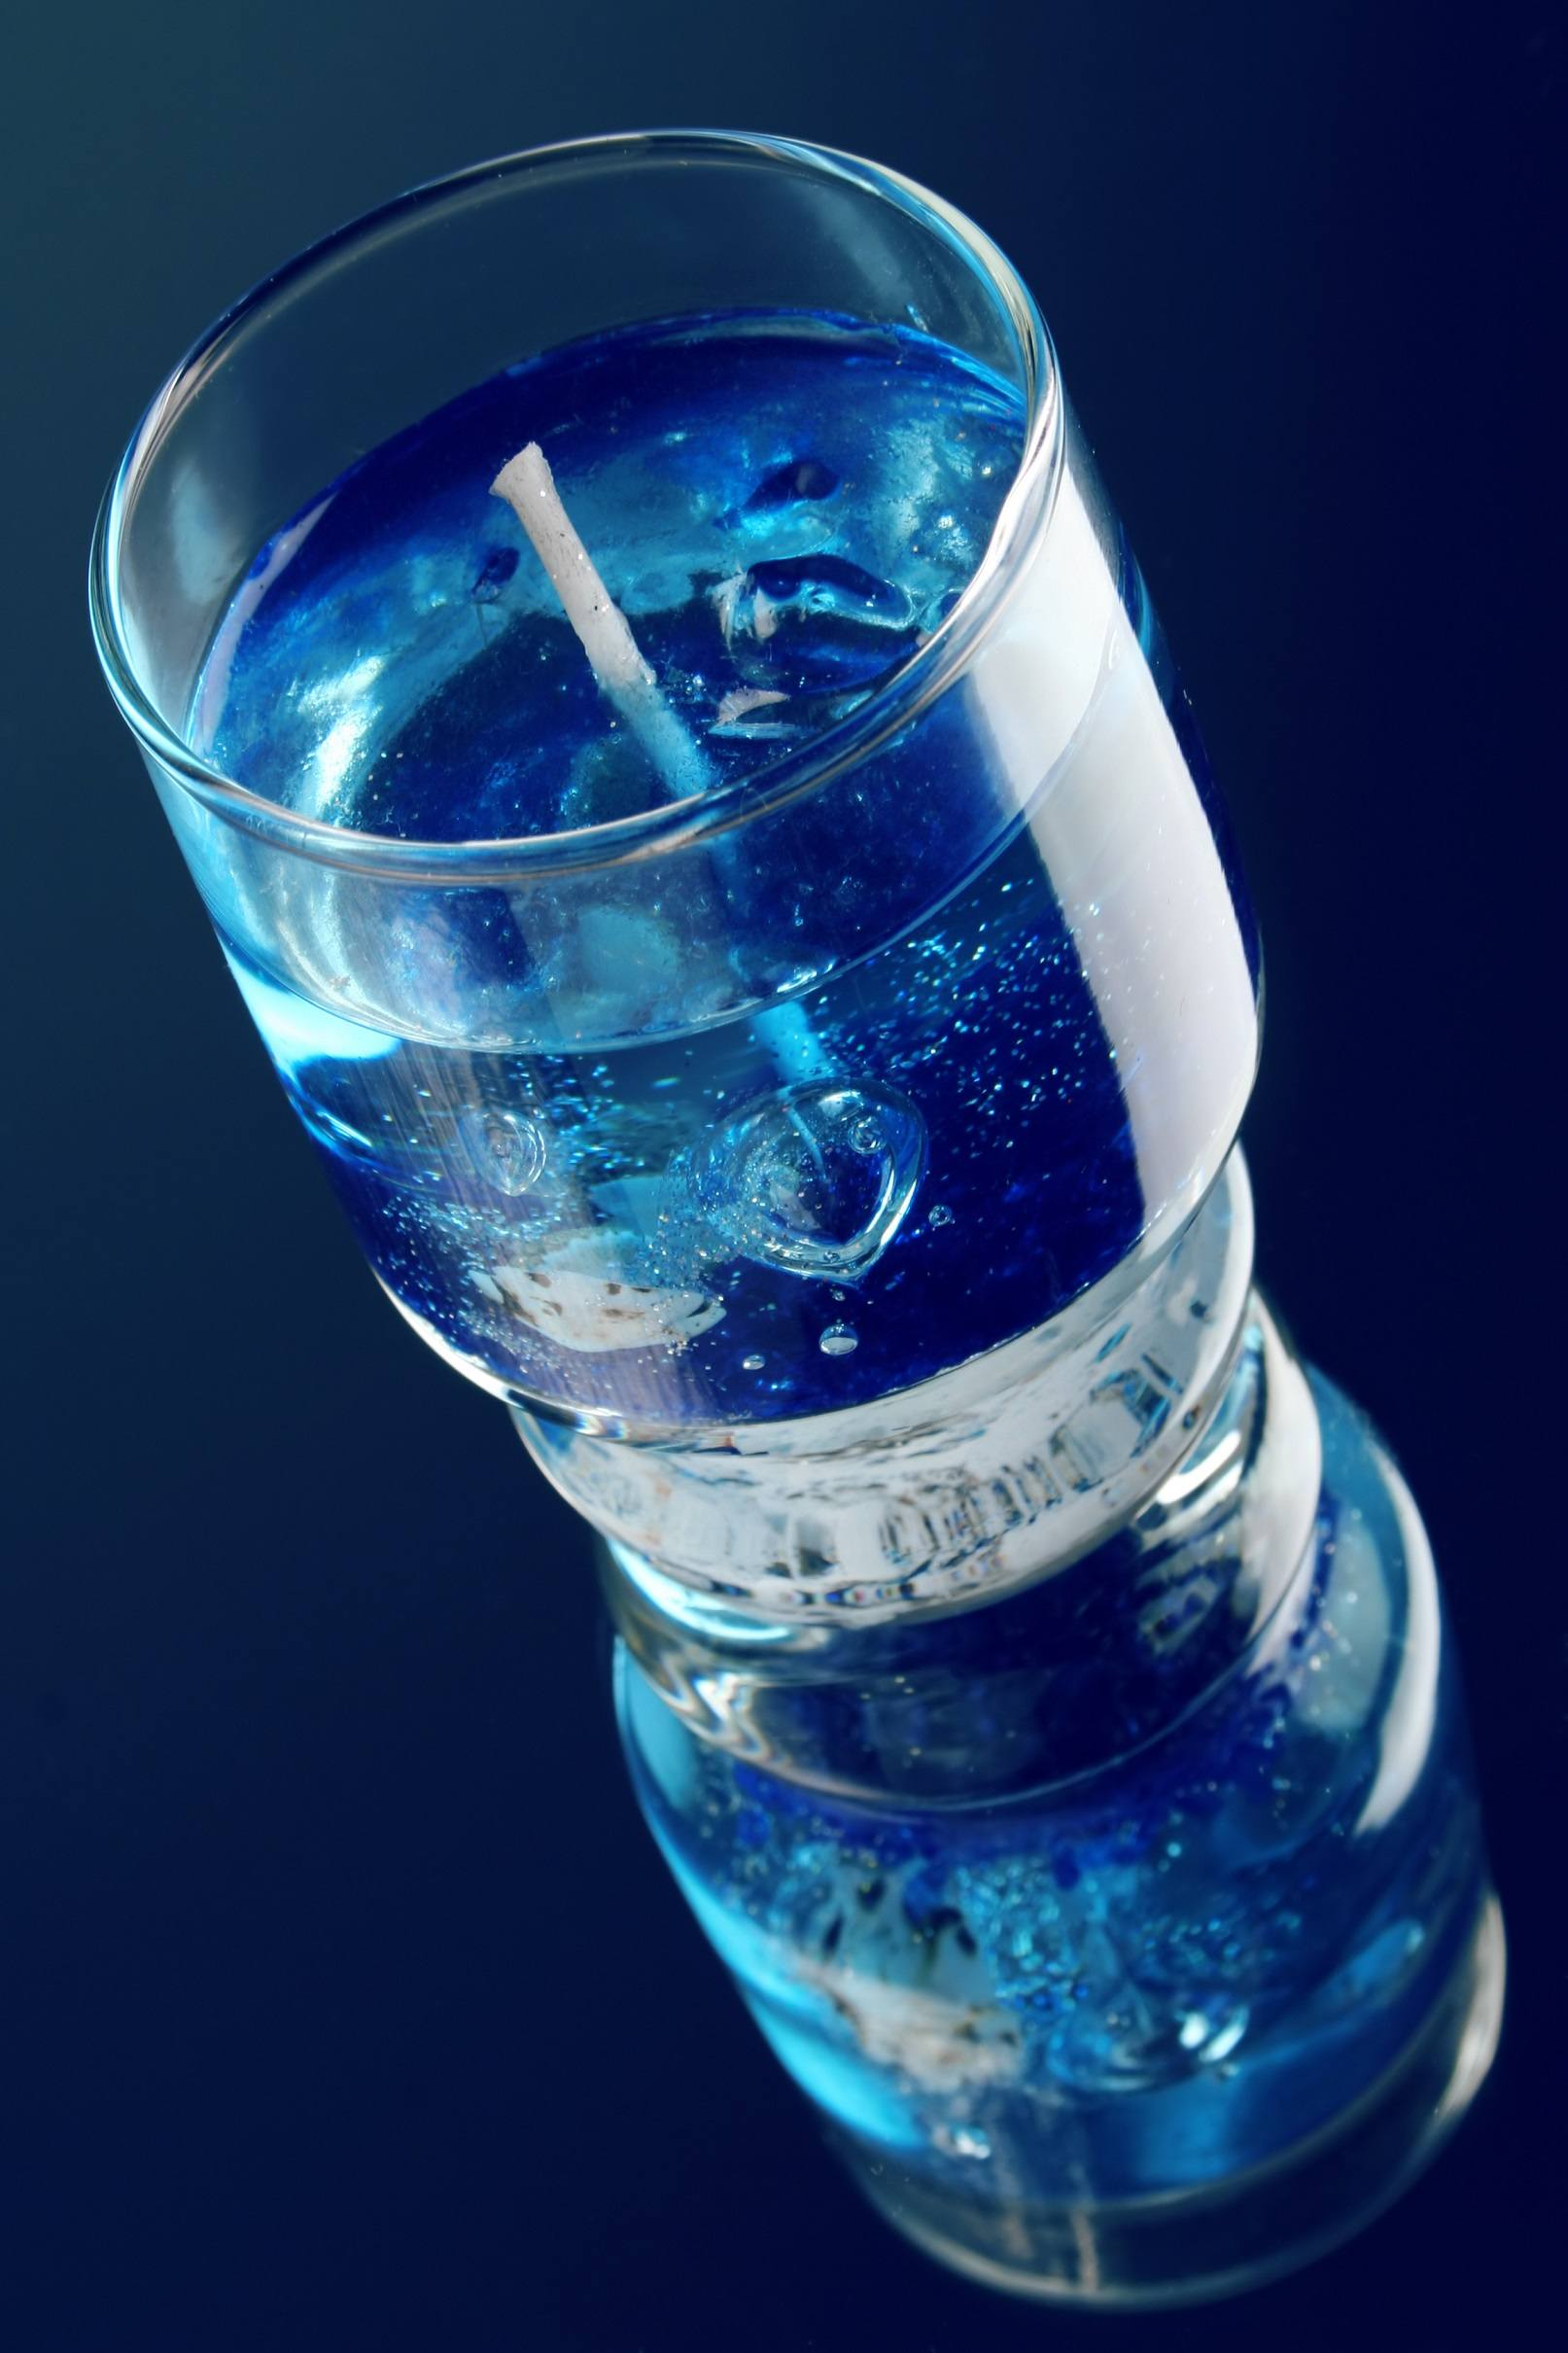 Gel candle on blue background